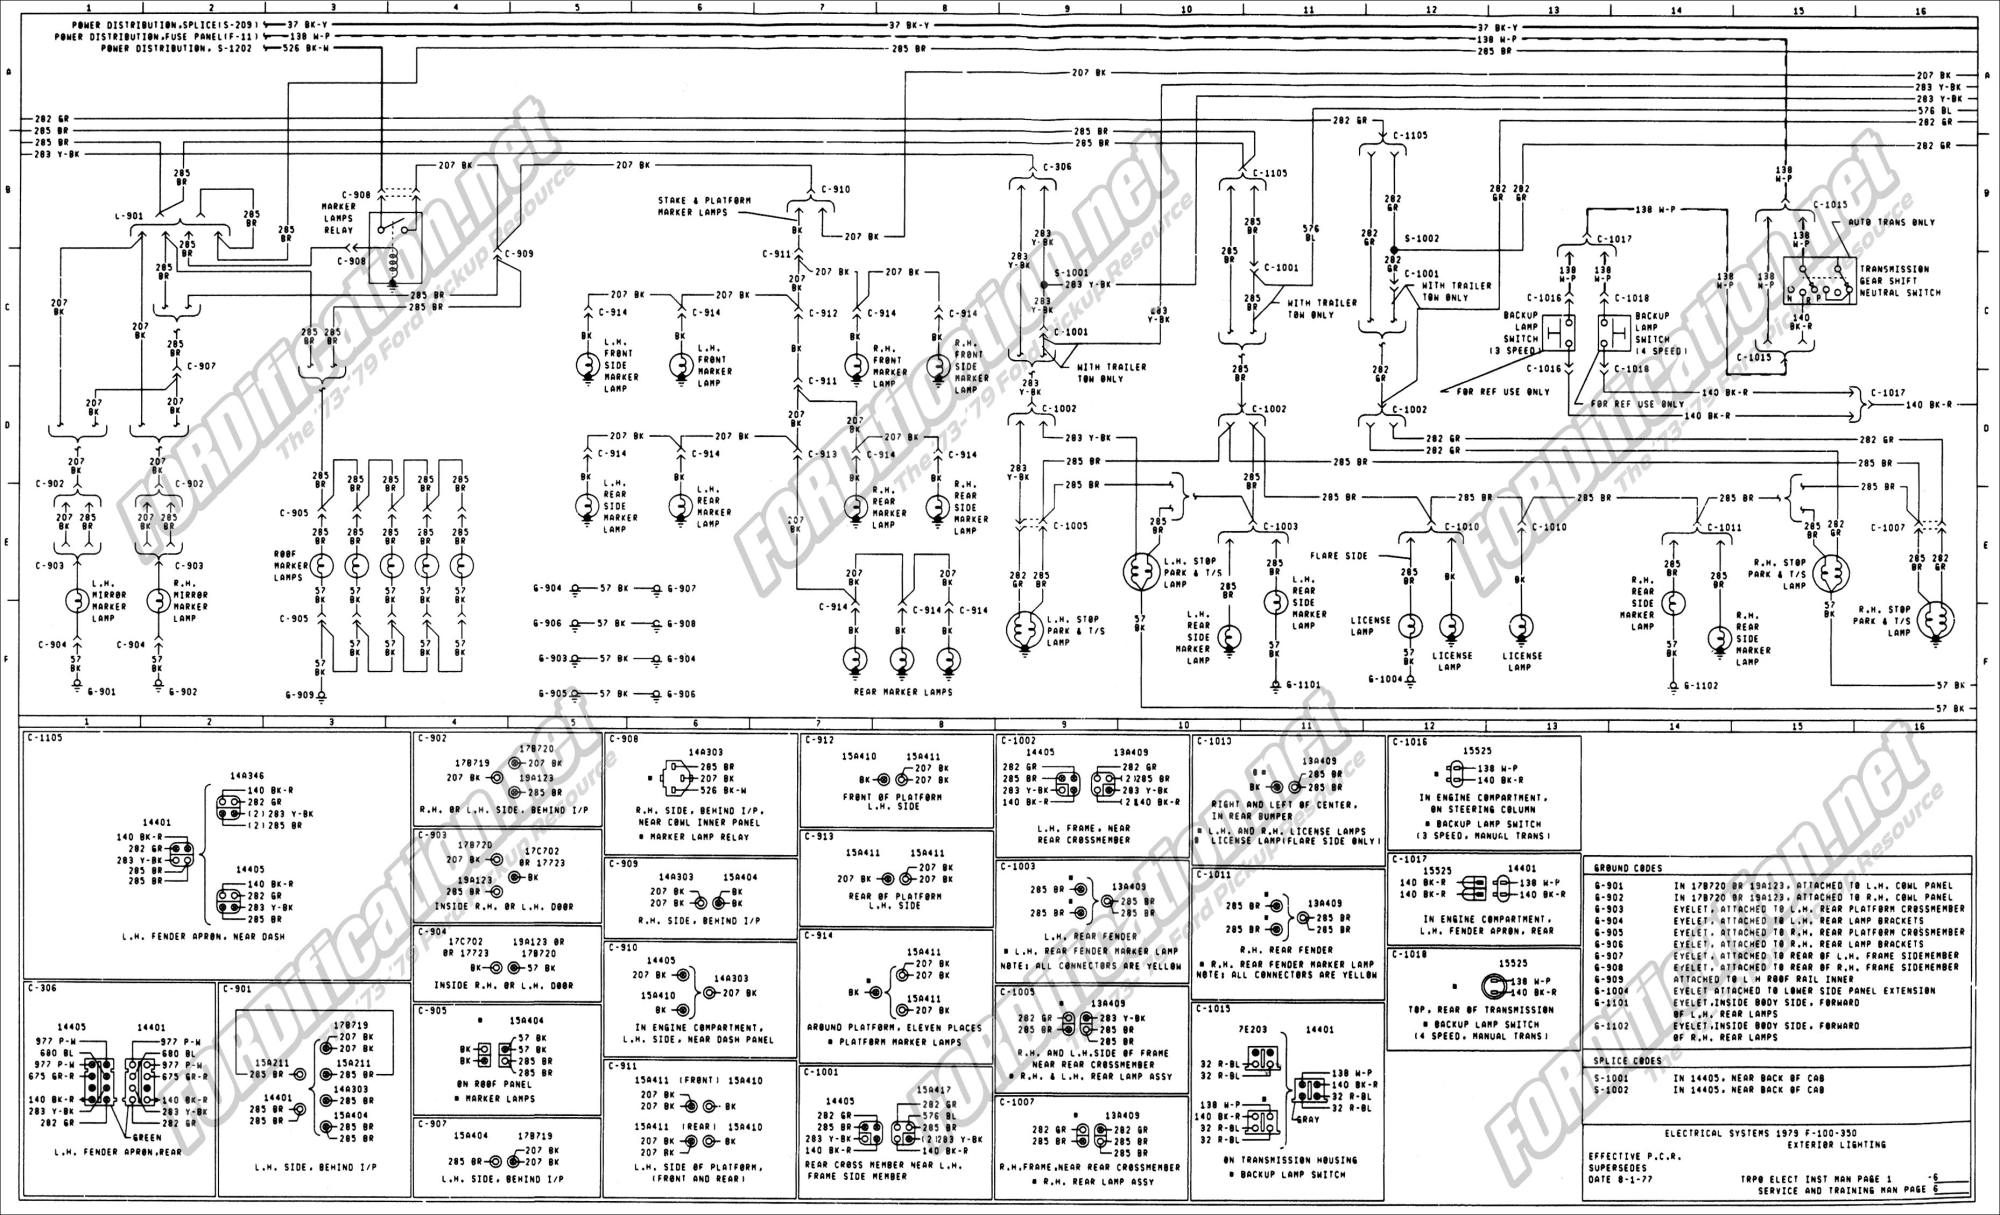 hight resolution of 1973 1979 ford truck wiring diagrams schematics fordification net 99 f150 wiring diagram wiring diagram for 78 f150 ranger